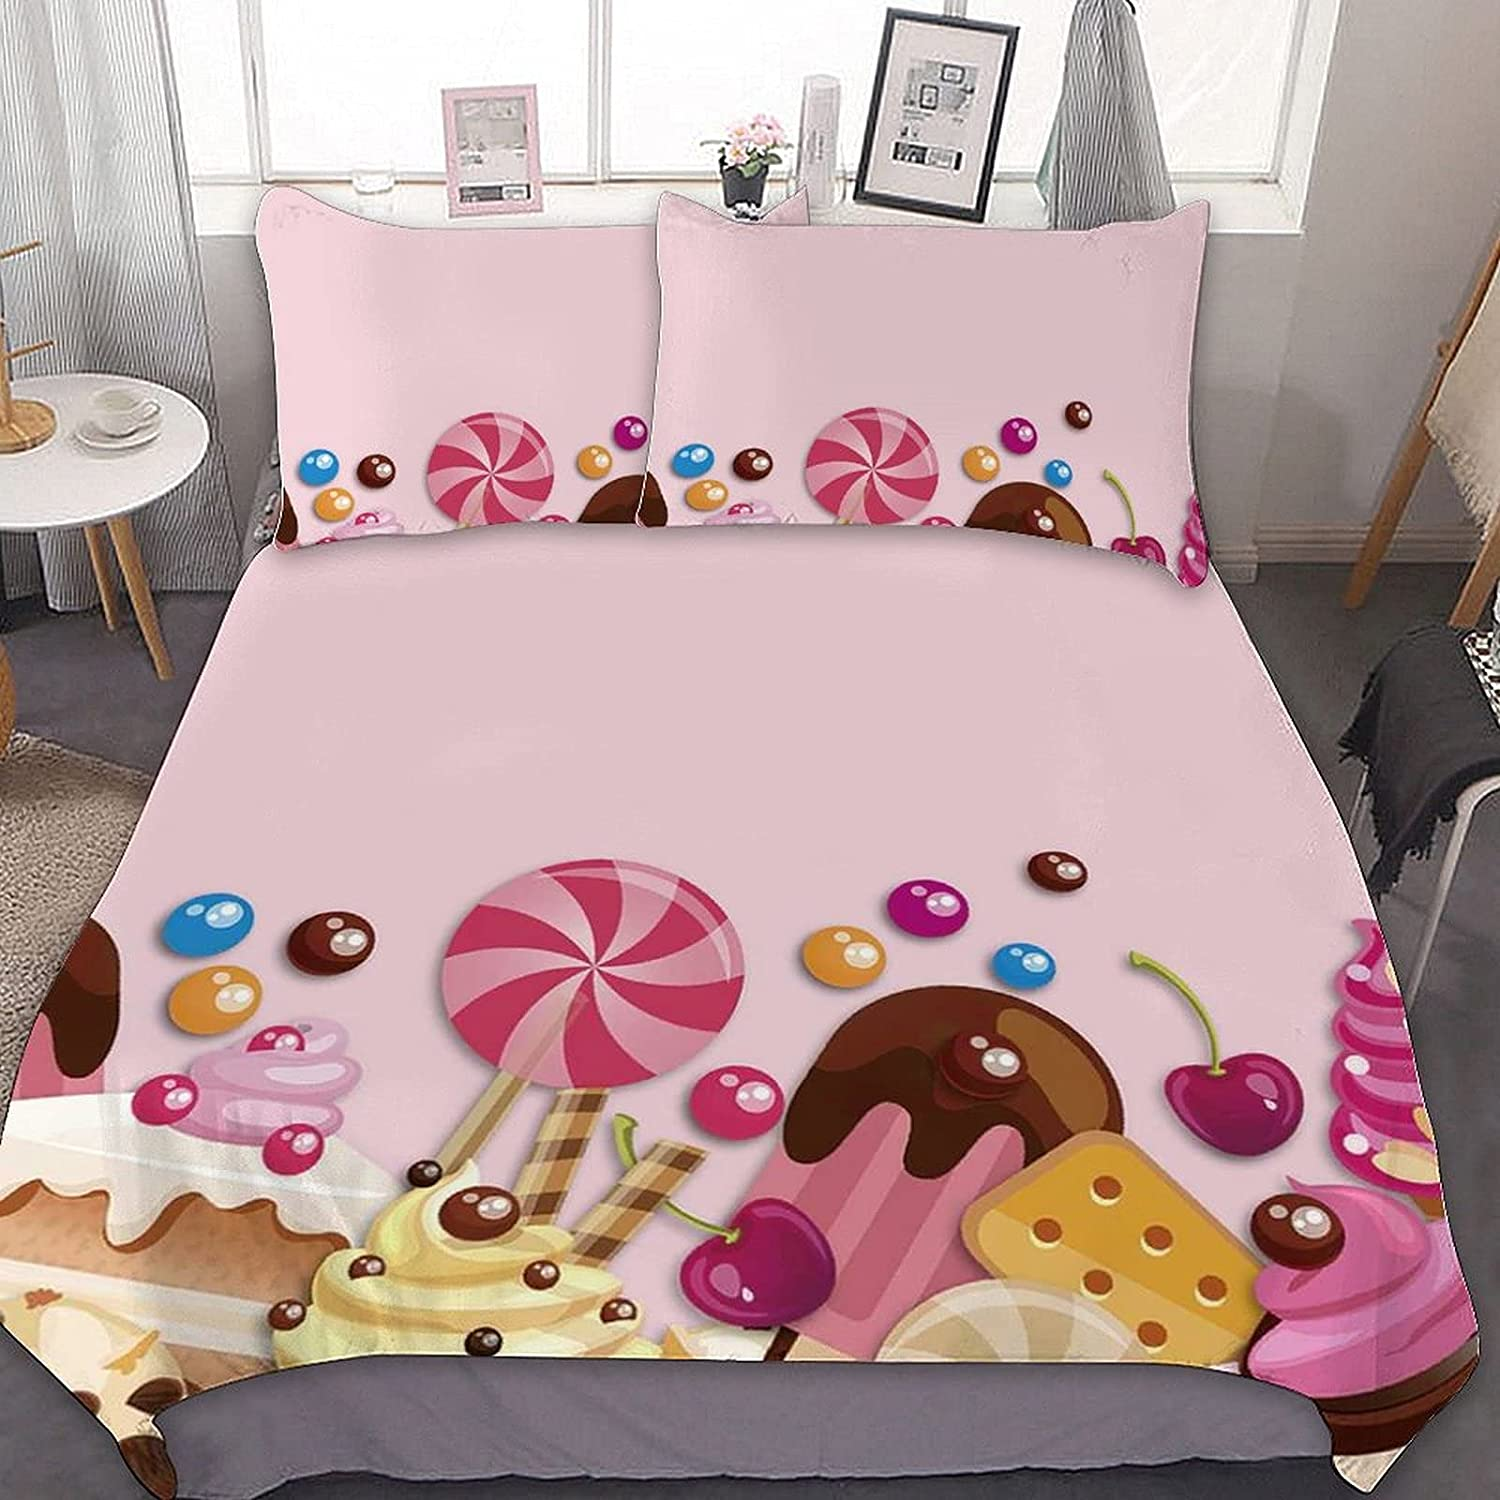 Colorful Industry No. 1 Candy Lollipop Indianapolis Mall Background Pattern Quilt Set Cover Duvet